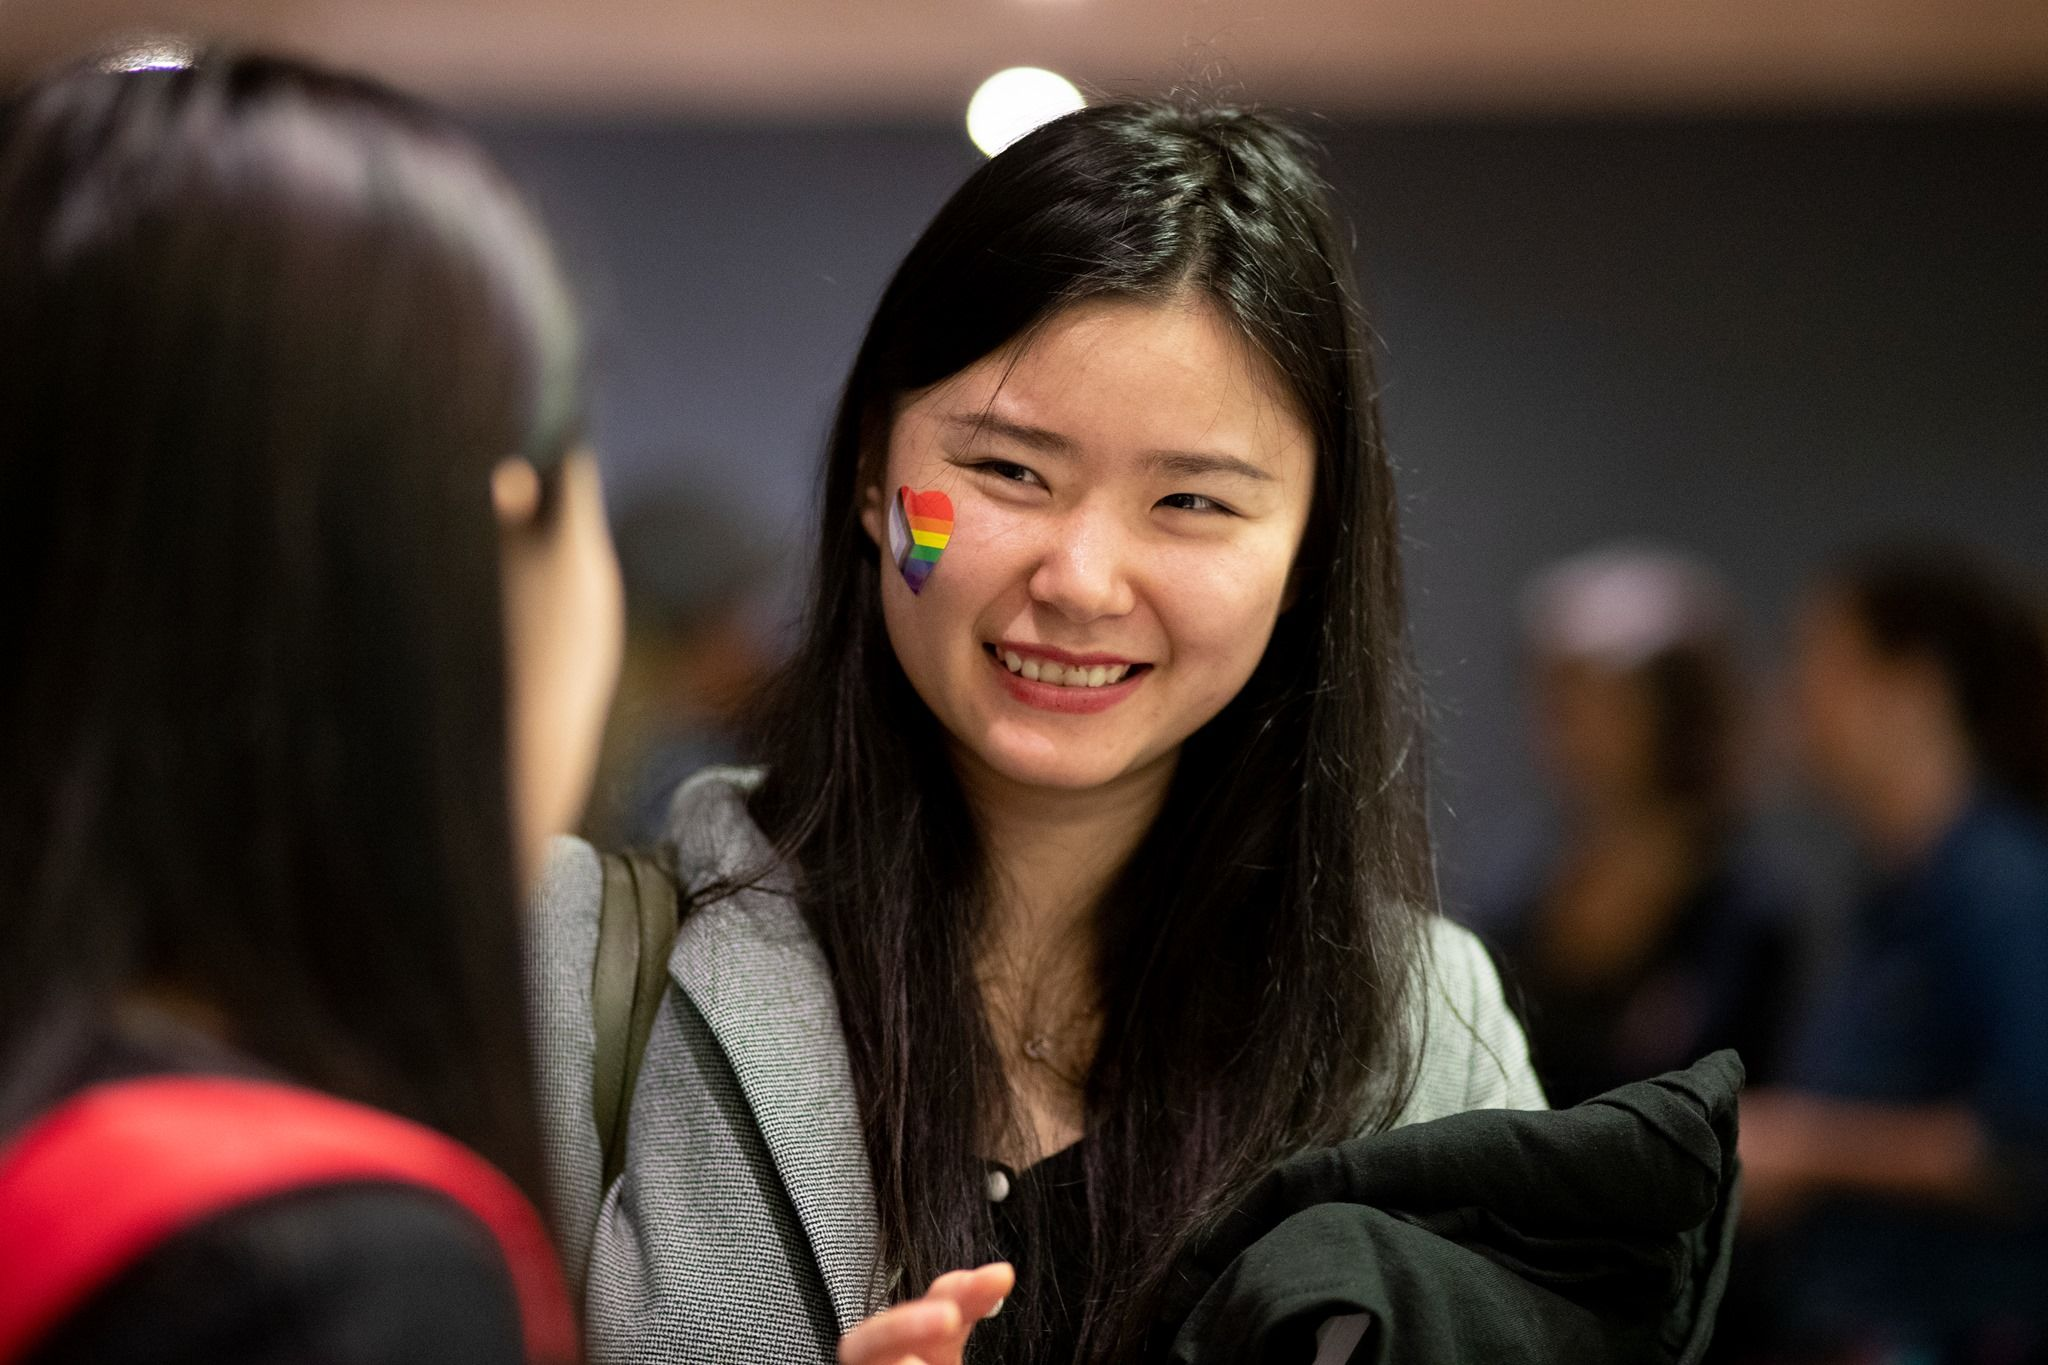 Student smiling during conversation